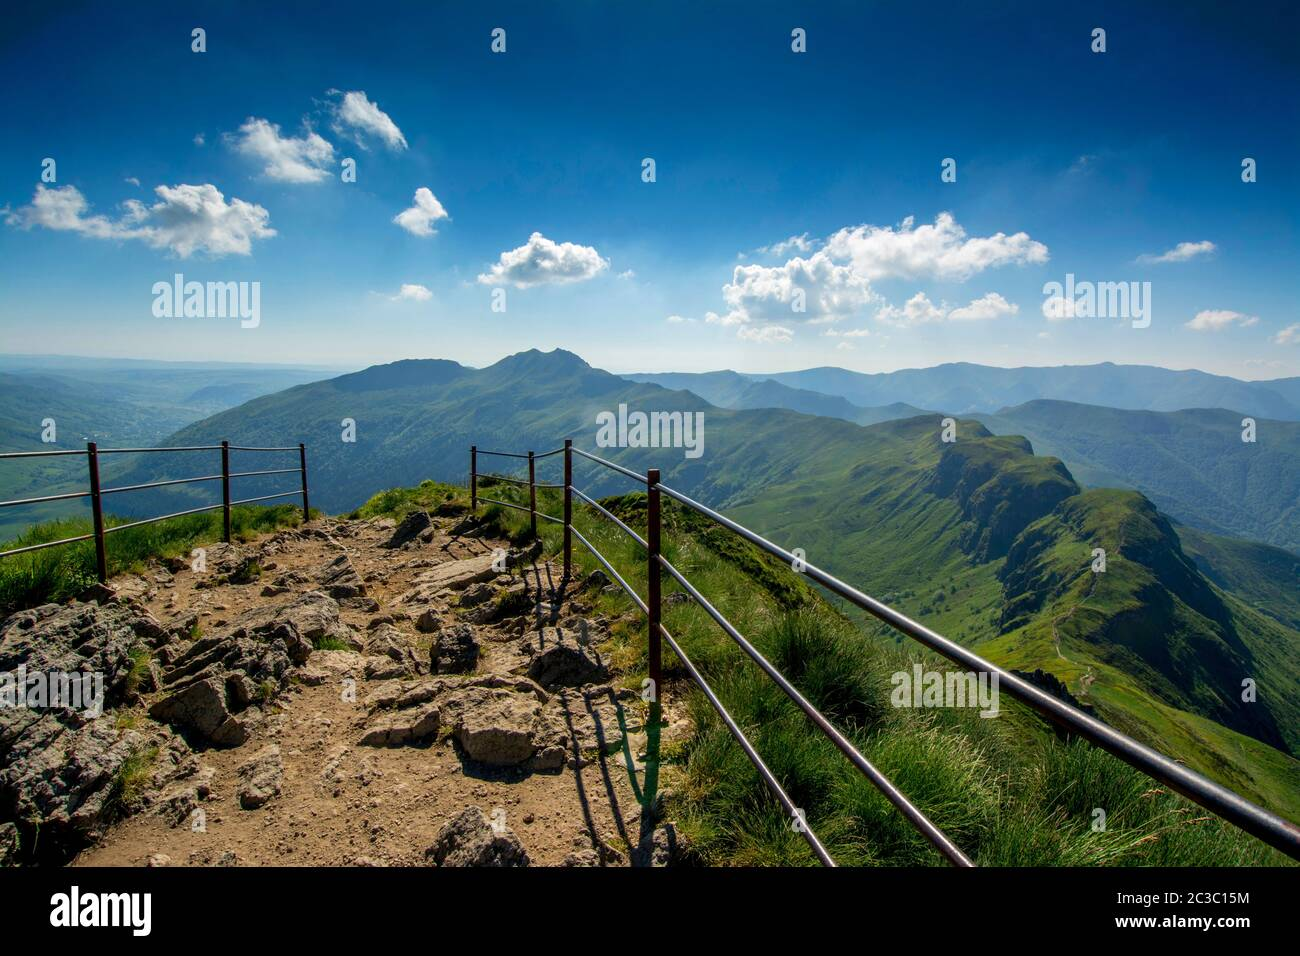 Summit of Puy Mary.Auvergne Volcanoes Regional Nature Park, Cantal, France, Europe Stock Photo